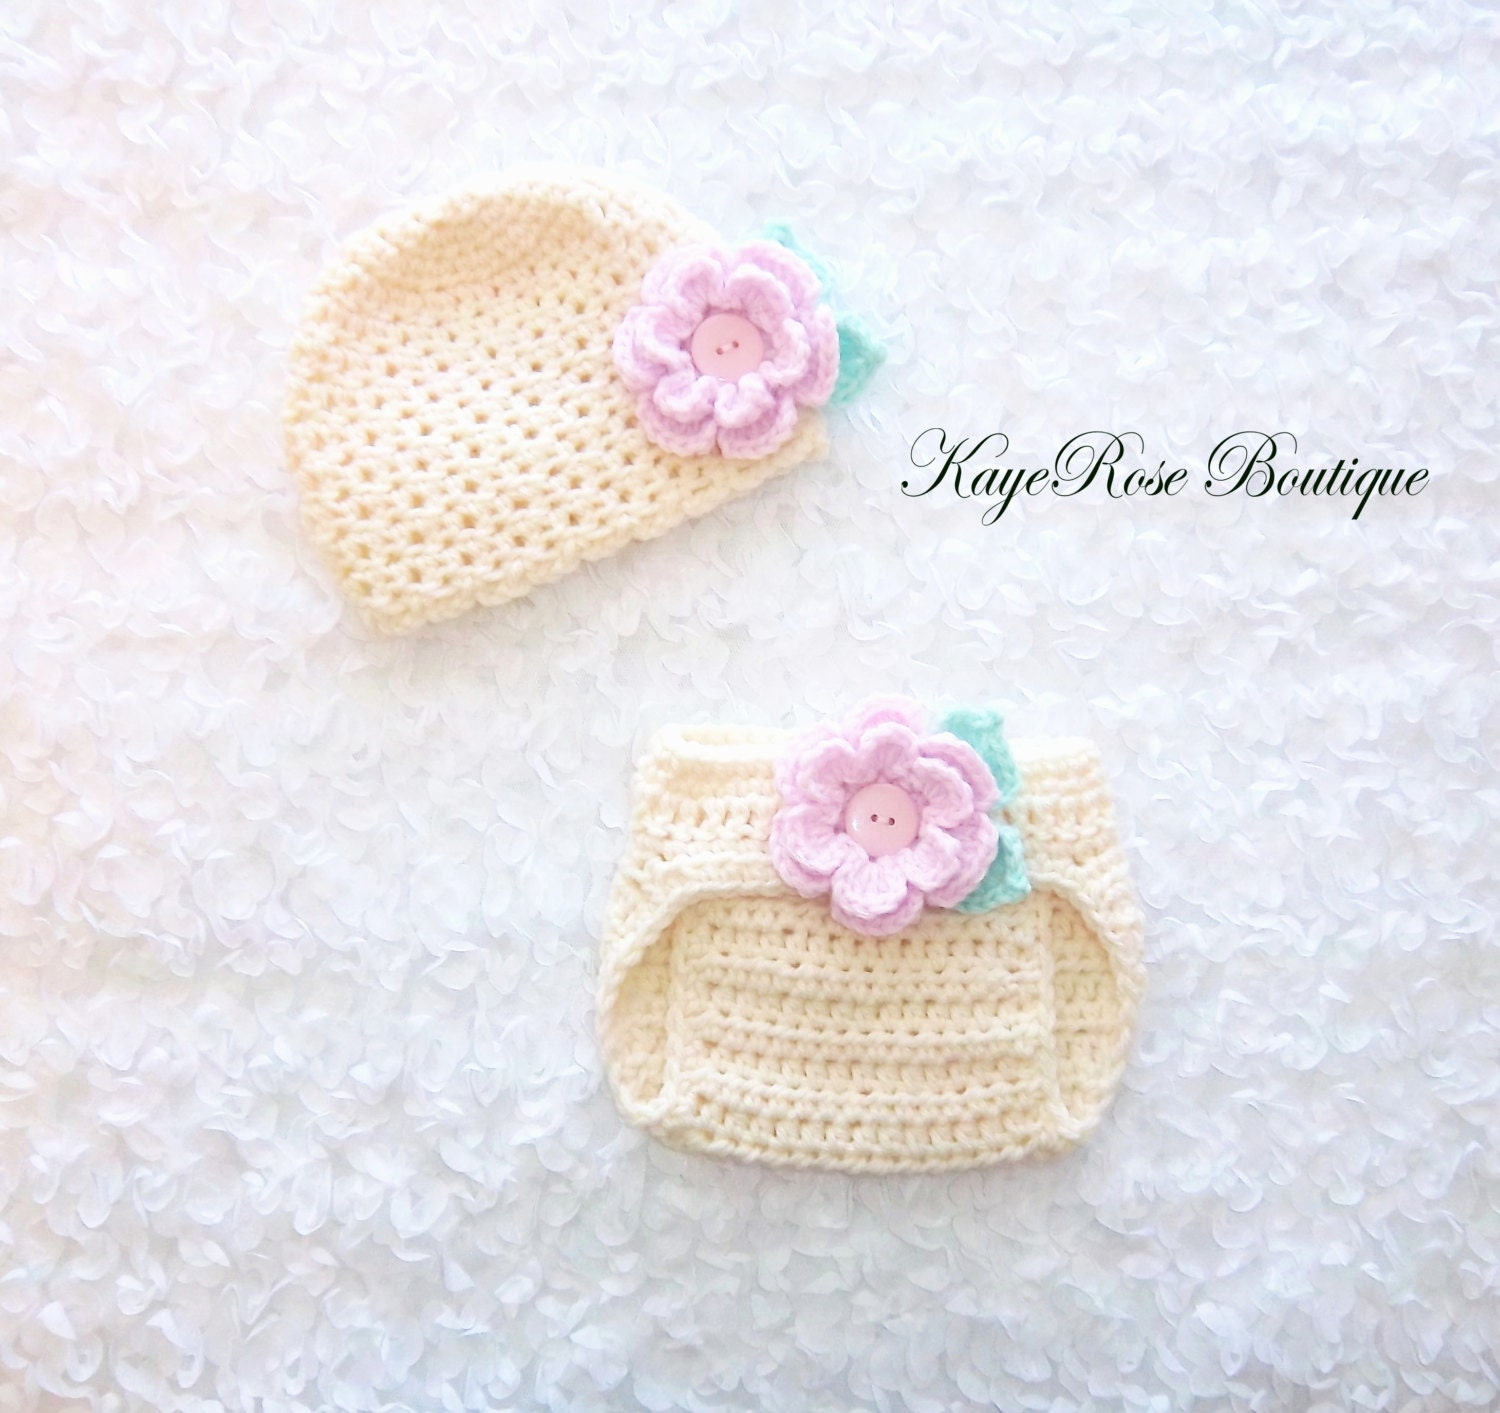 Crochet Hat Pattern For 8 Month Old : Newborn to 3 Month Old Baby Girl Crochet Flower Hat and Diaper